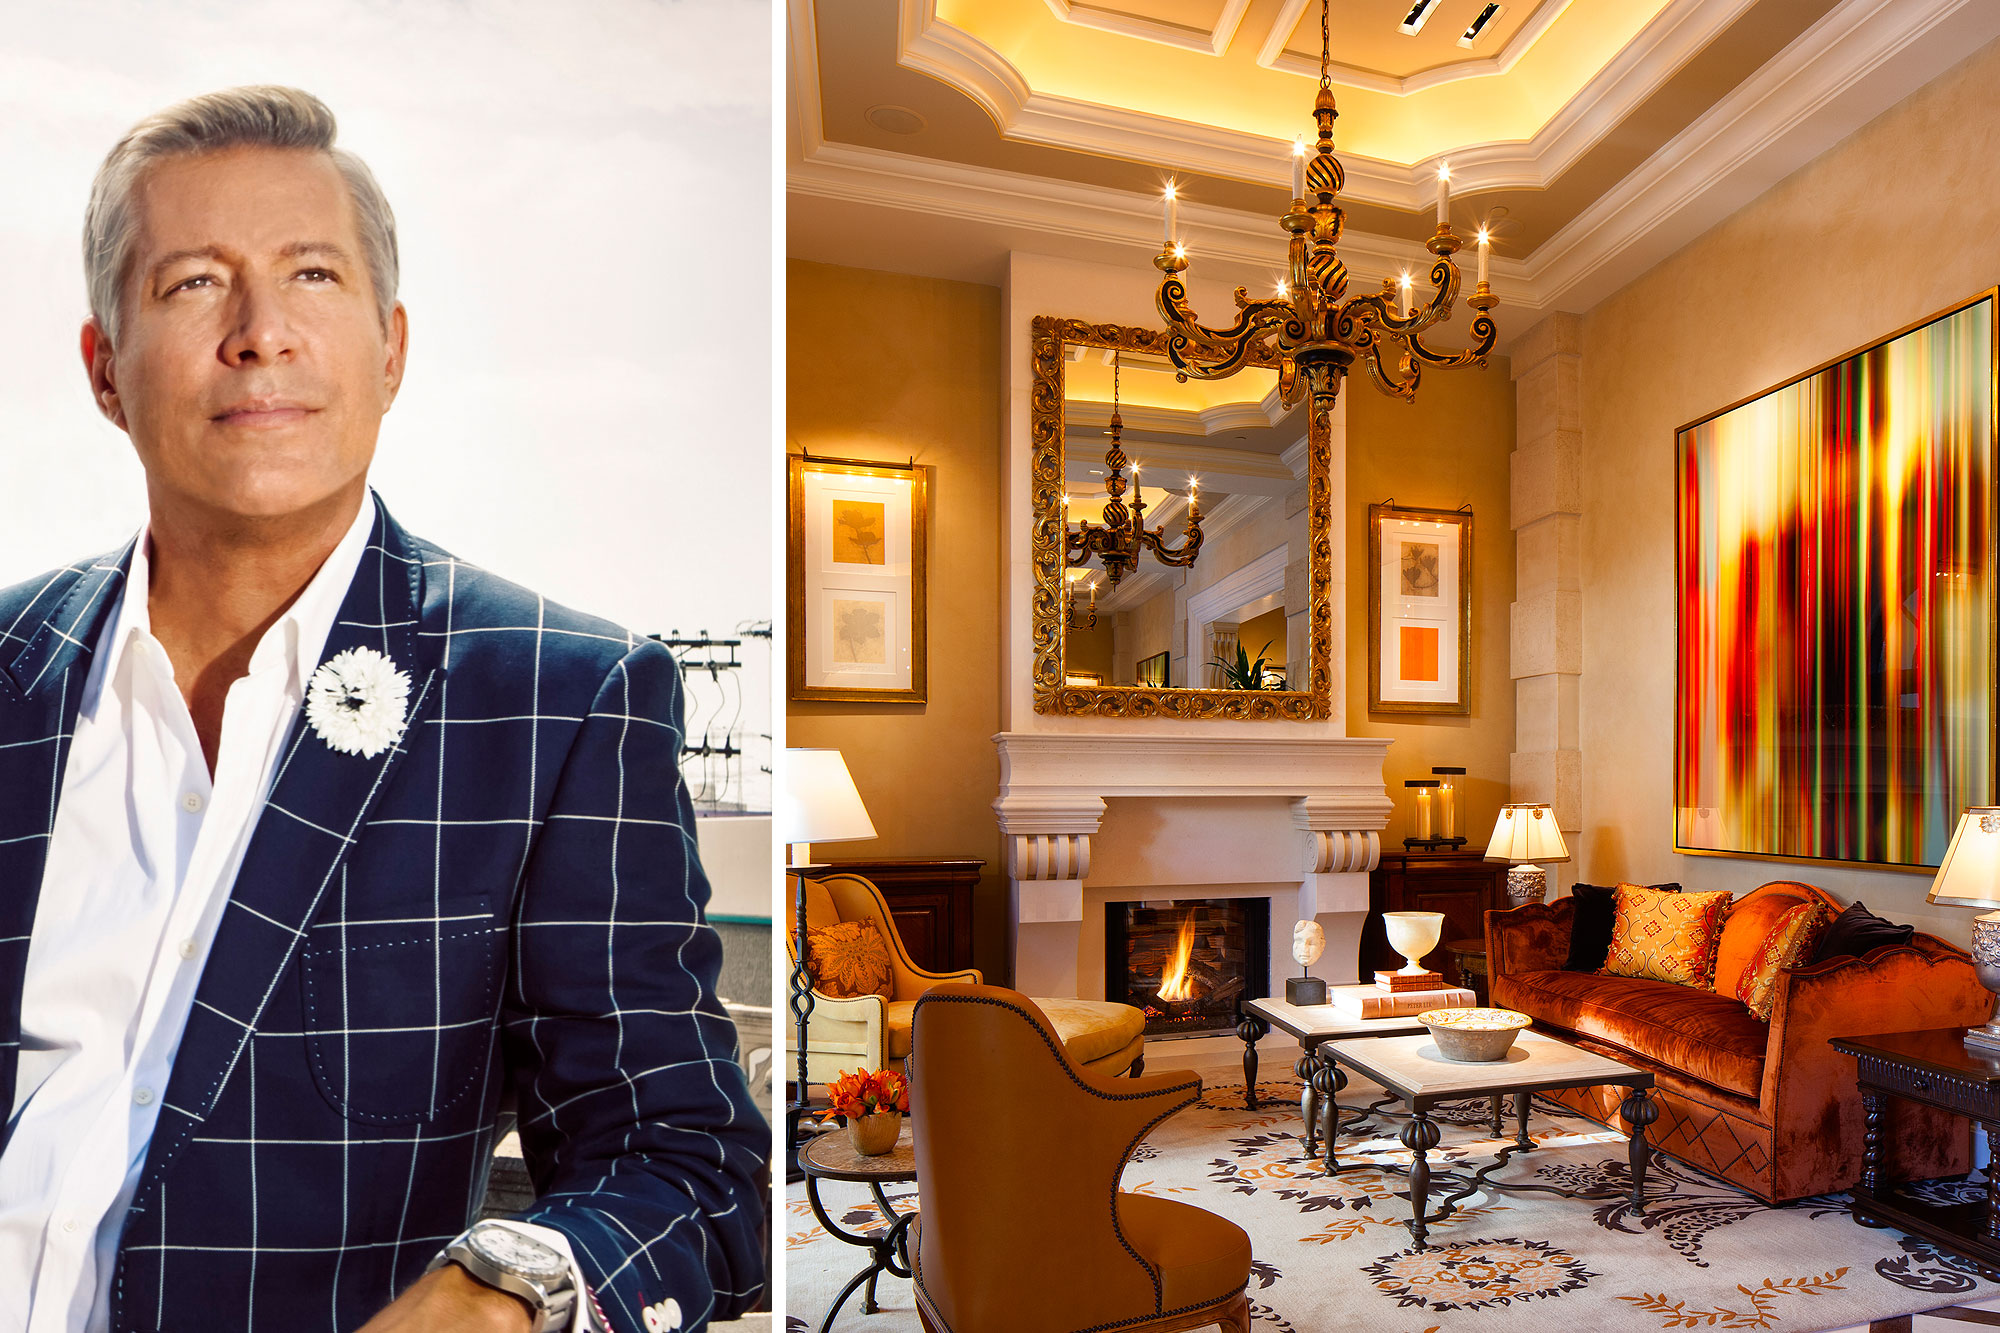 Redesigning Hospitality: An Interview With Kirk Nix